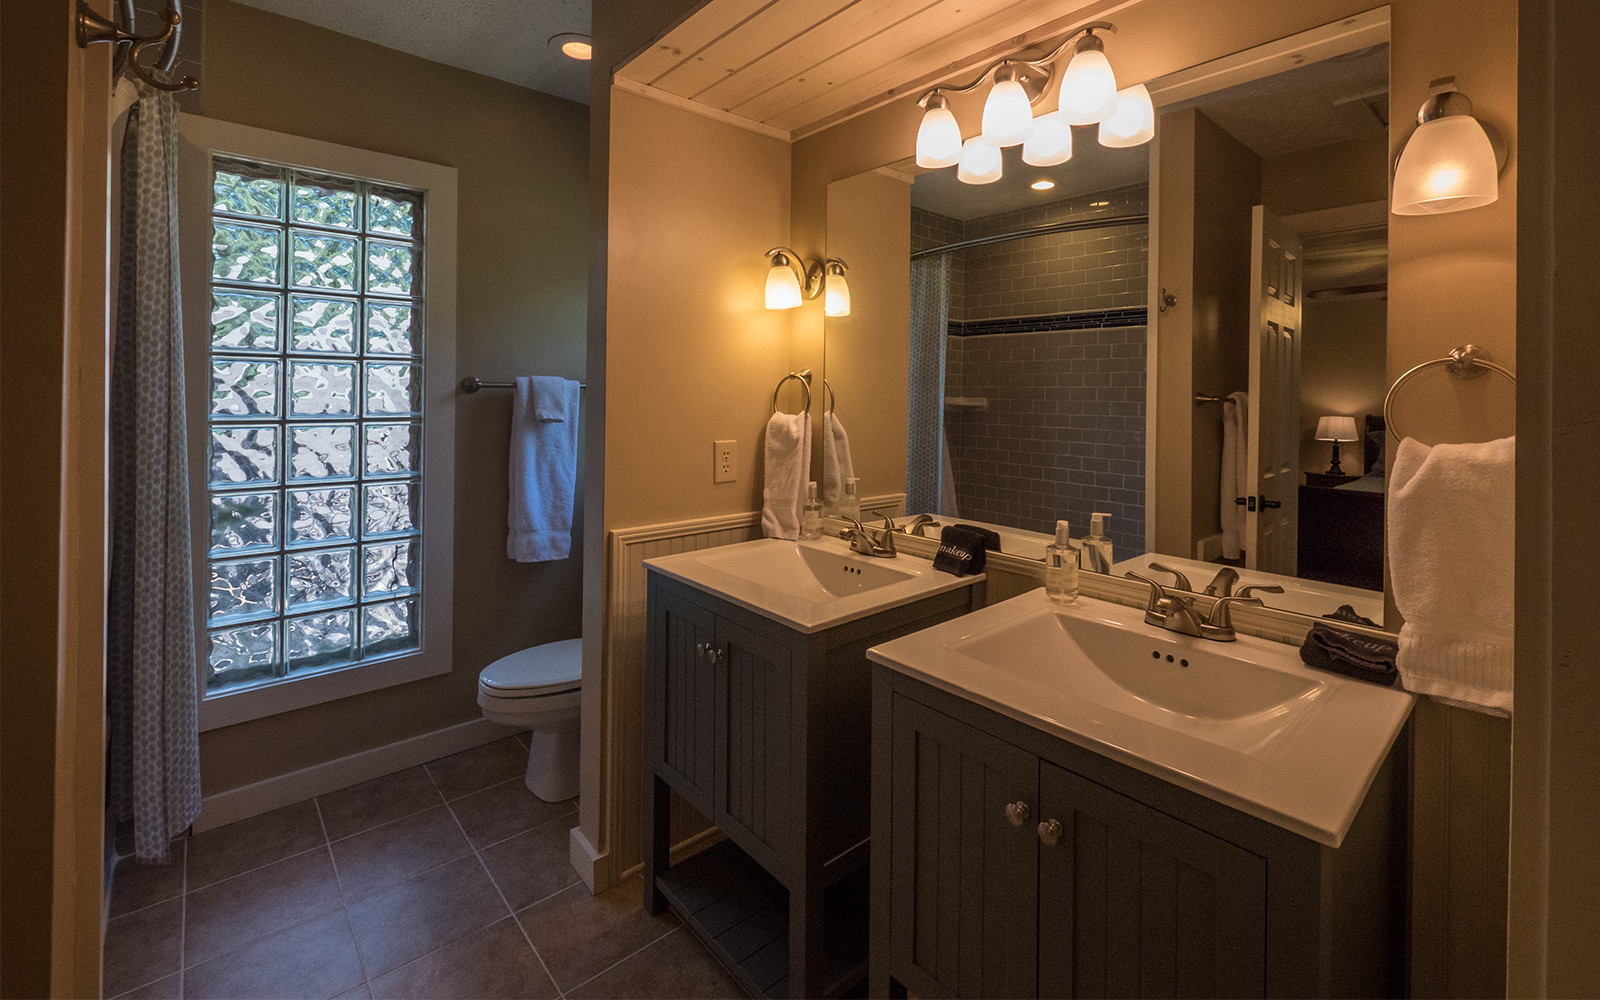 Guest house master ensuite bathroom